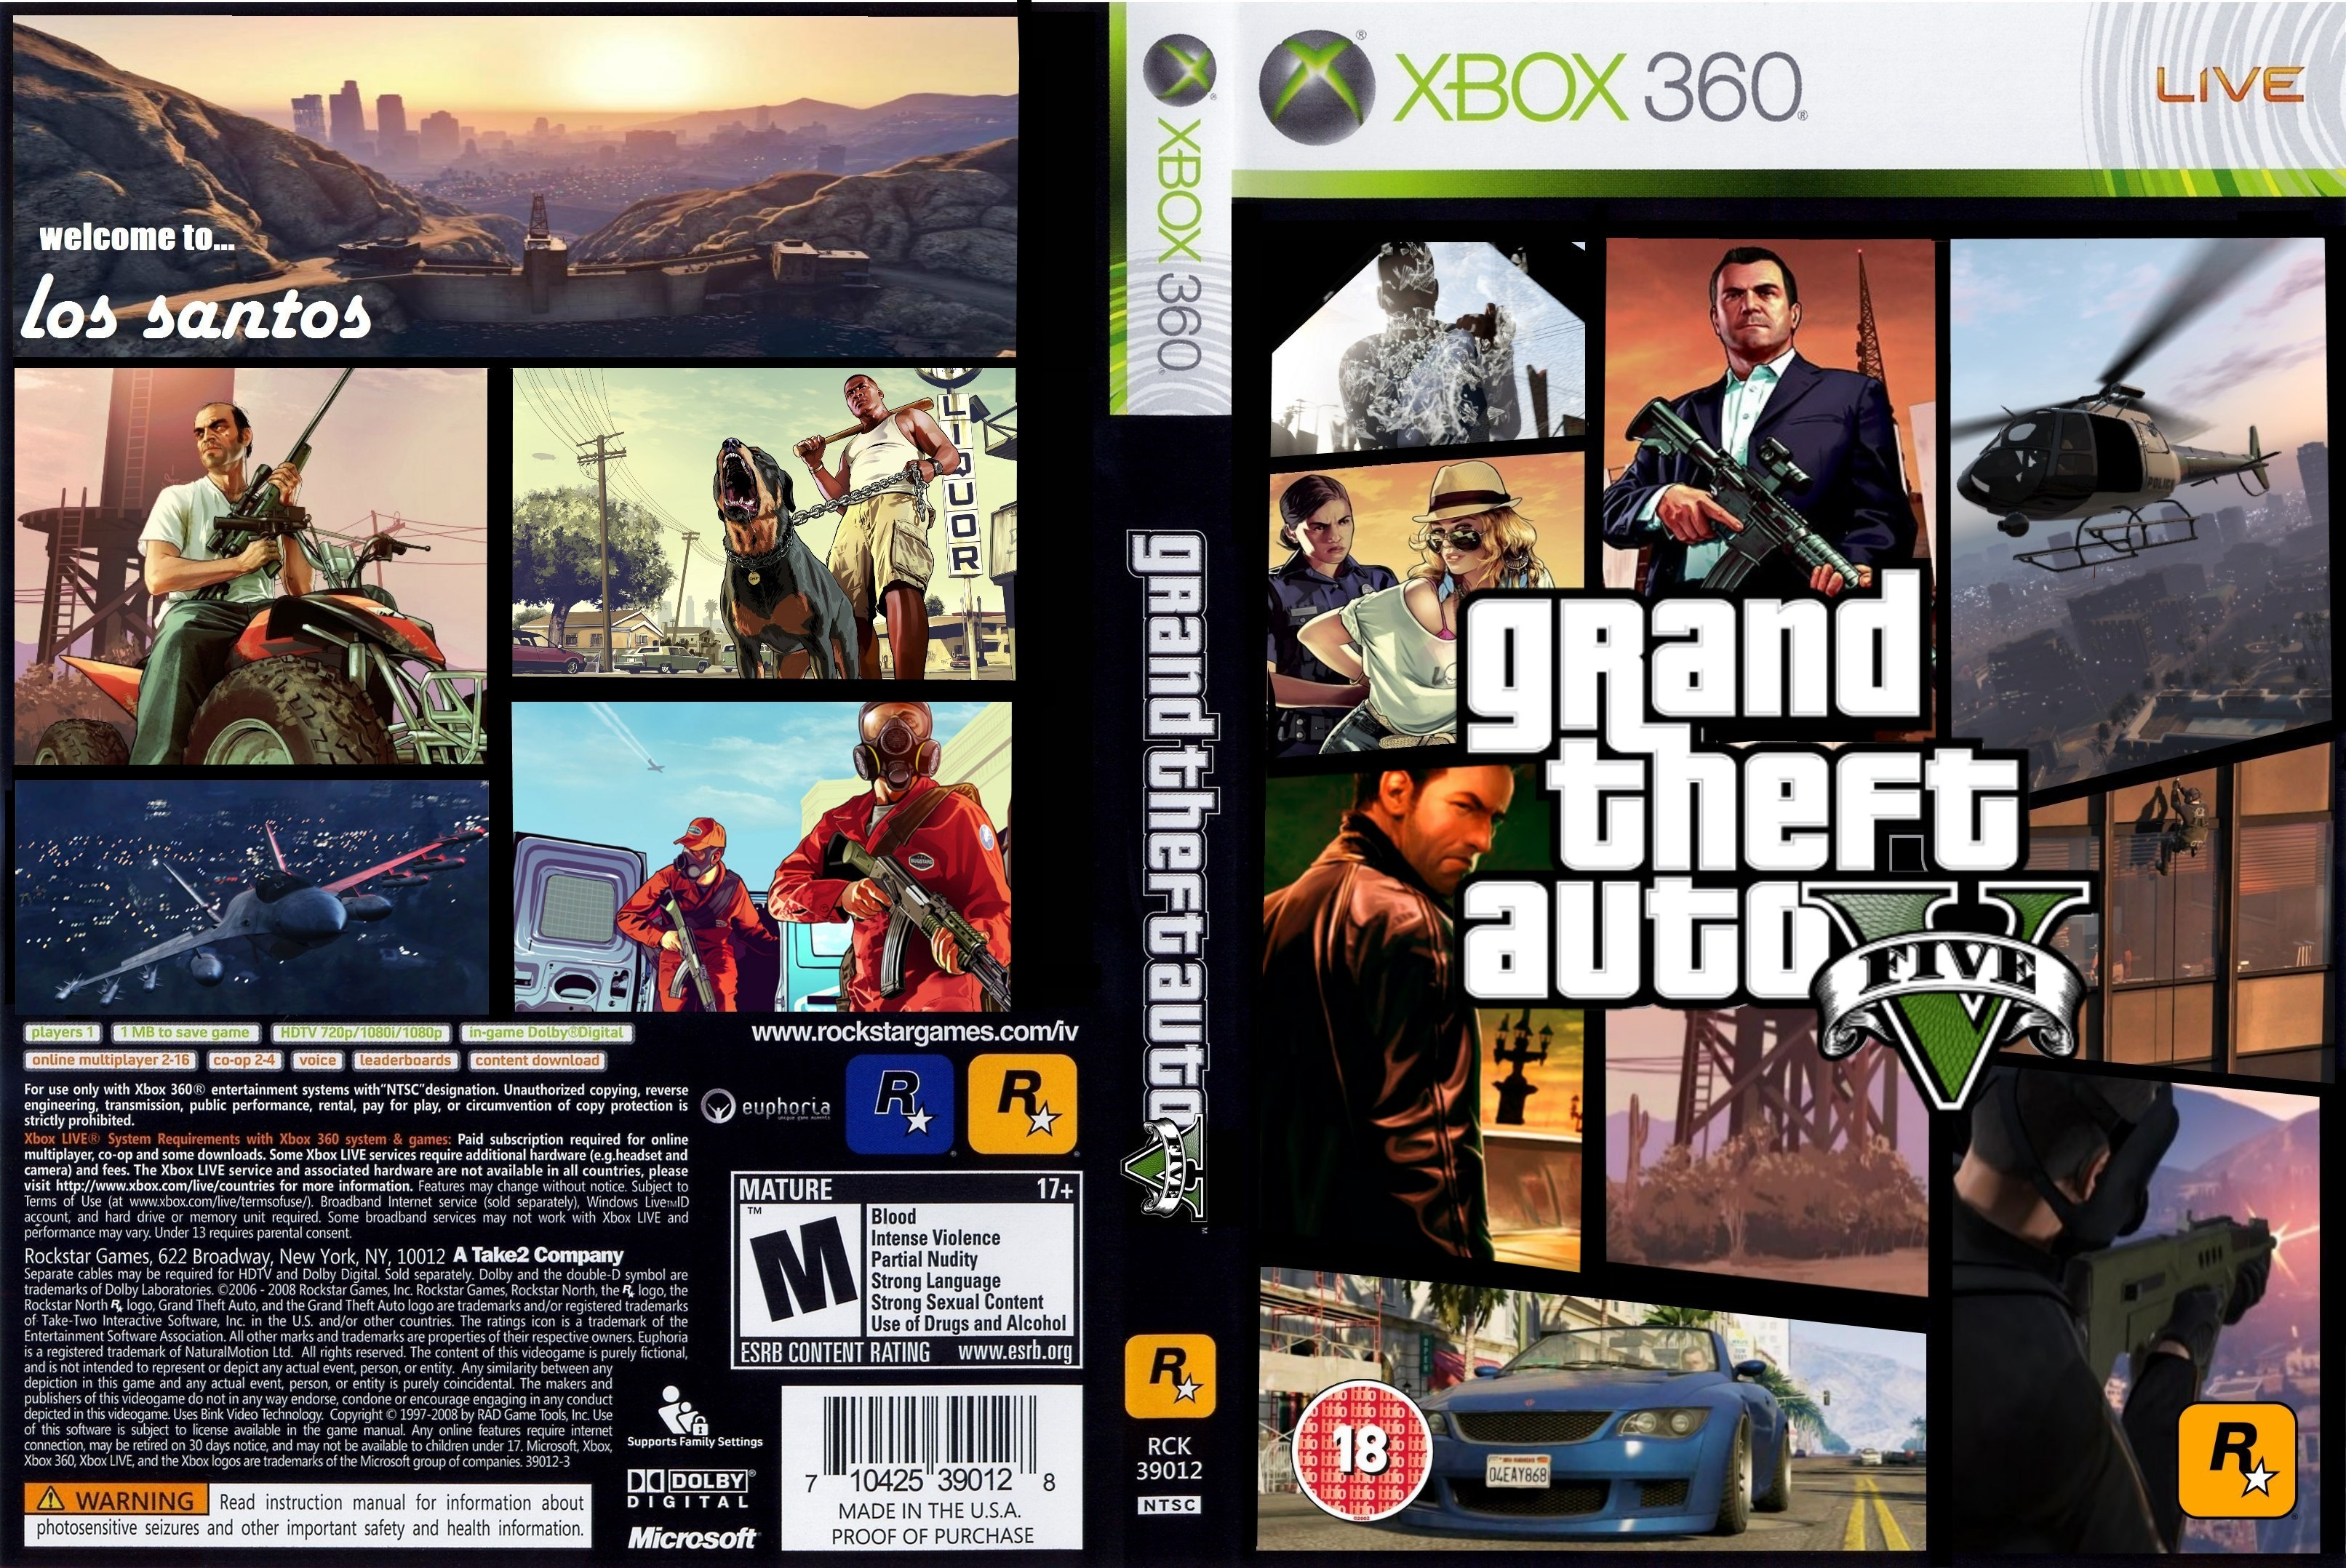 wallpapers are still related to wallpaper new gta 5 cover xbox at the 3225x2156